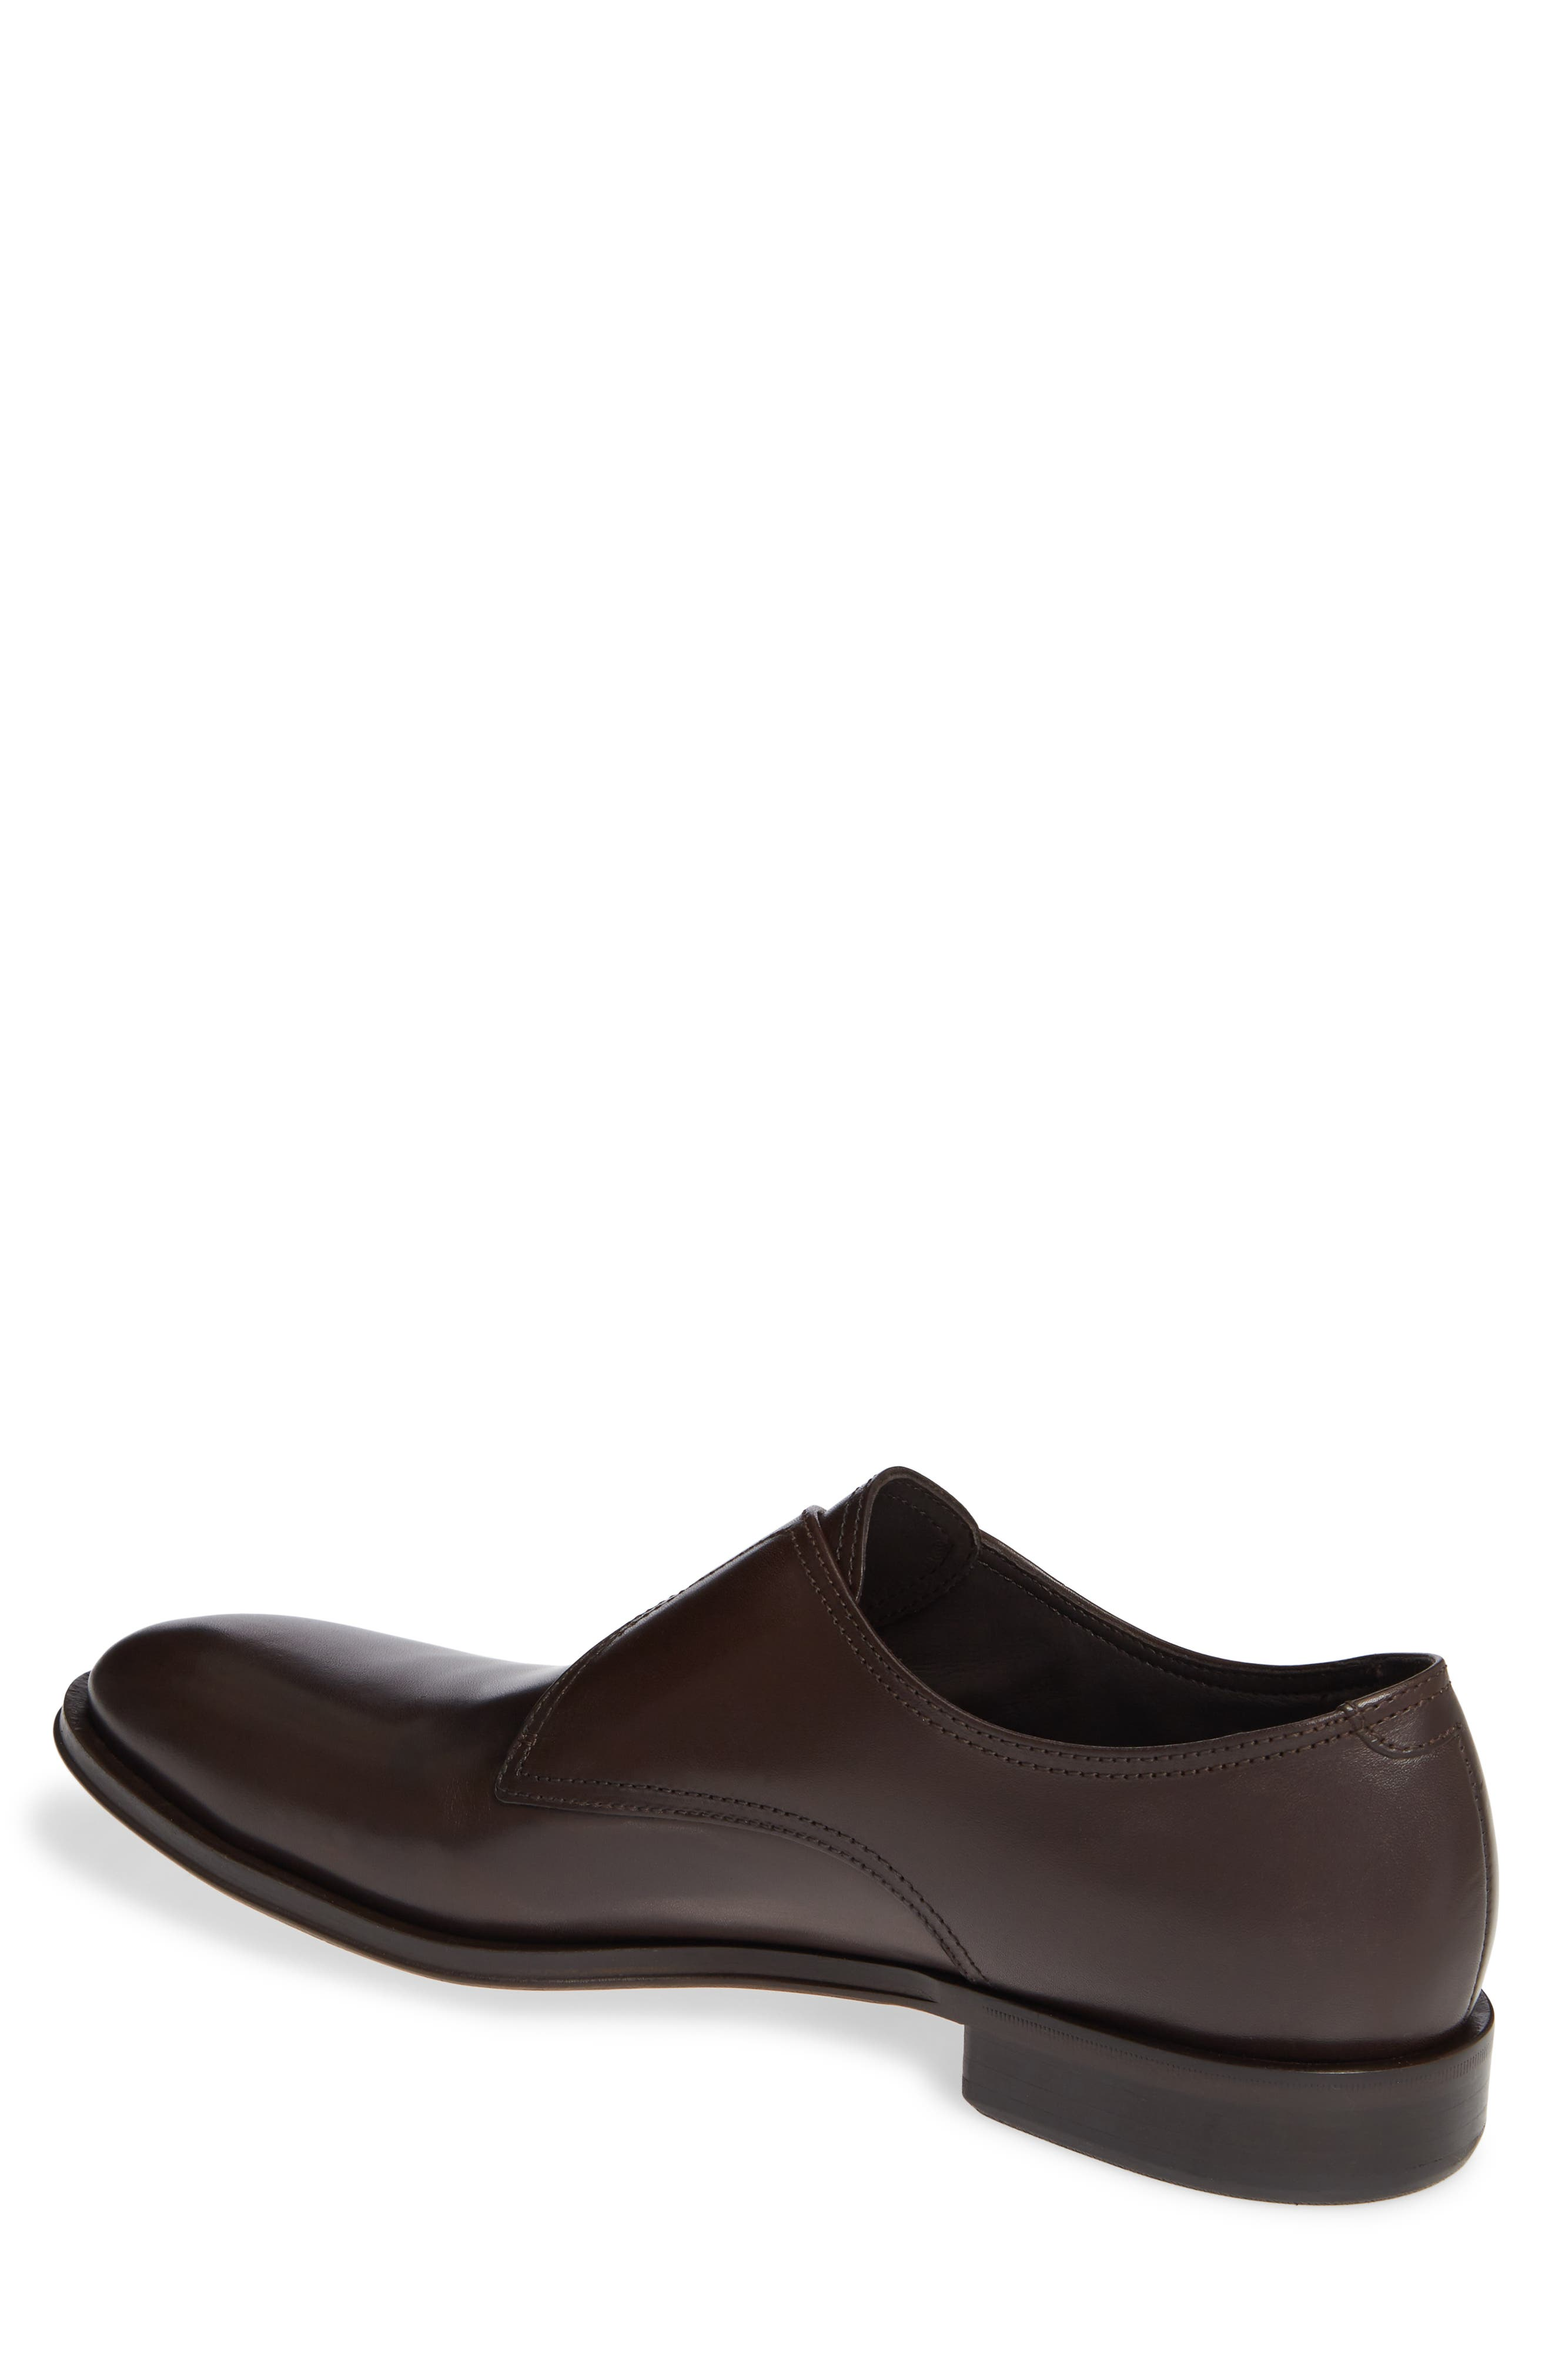 ALLEN EDMONDS, Umbria Monk Strap Shoe, Alternate thumbnail 2, color, DARK BROWN LEATHER